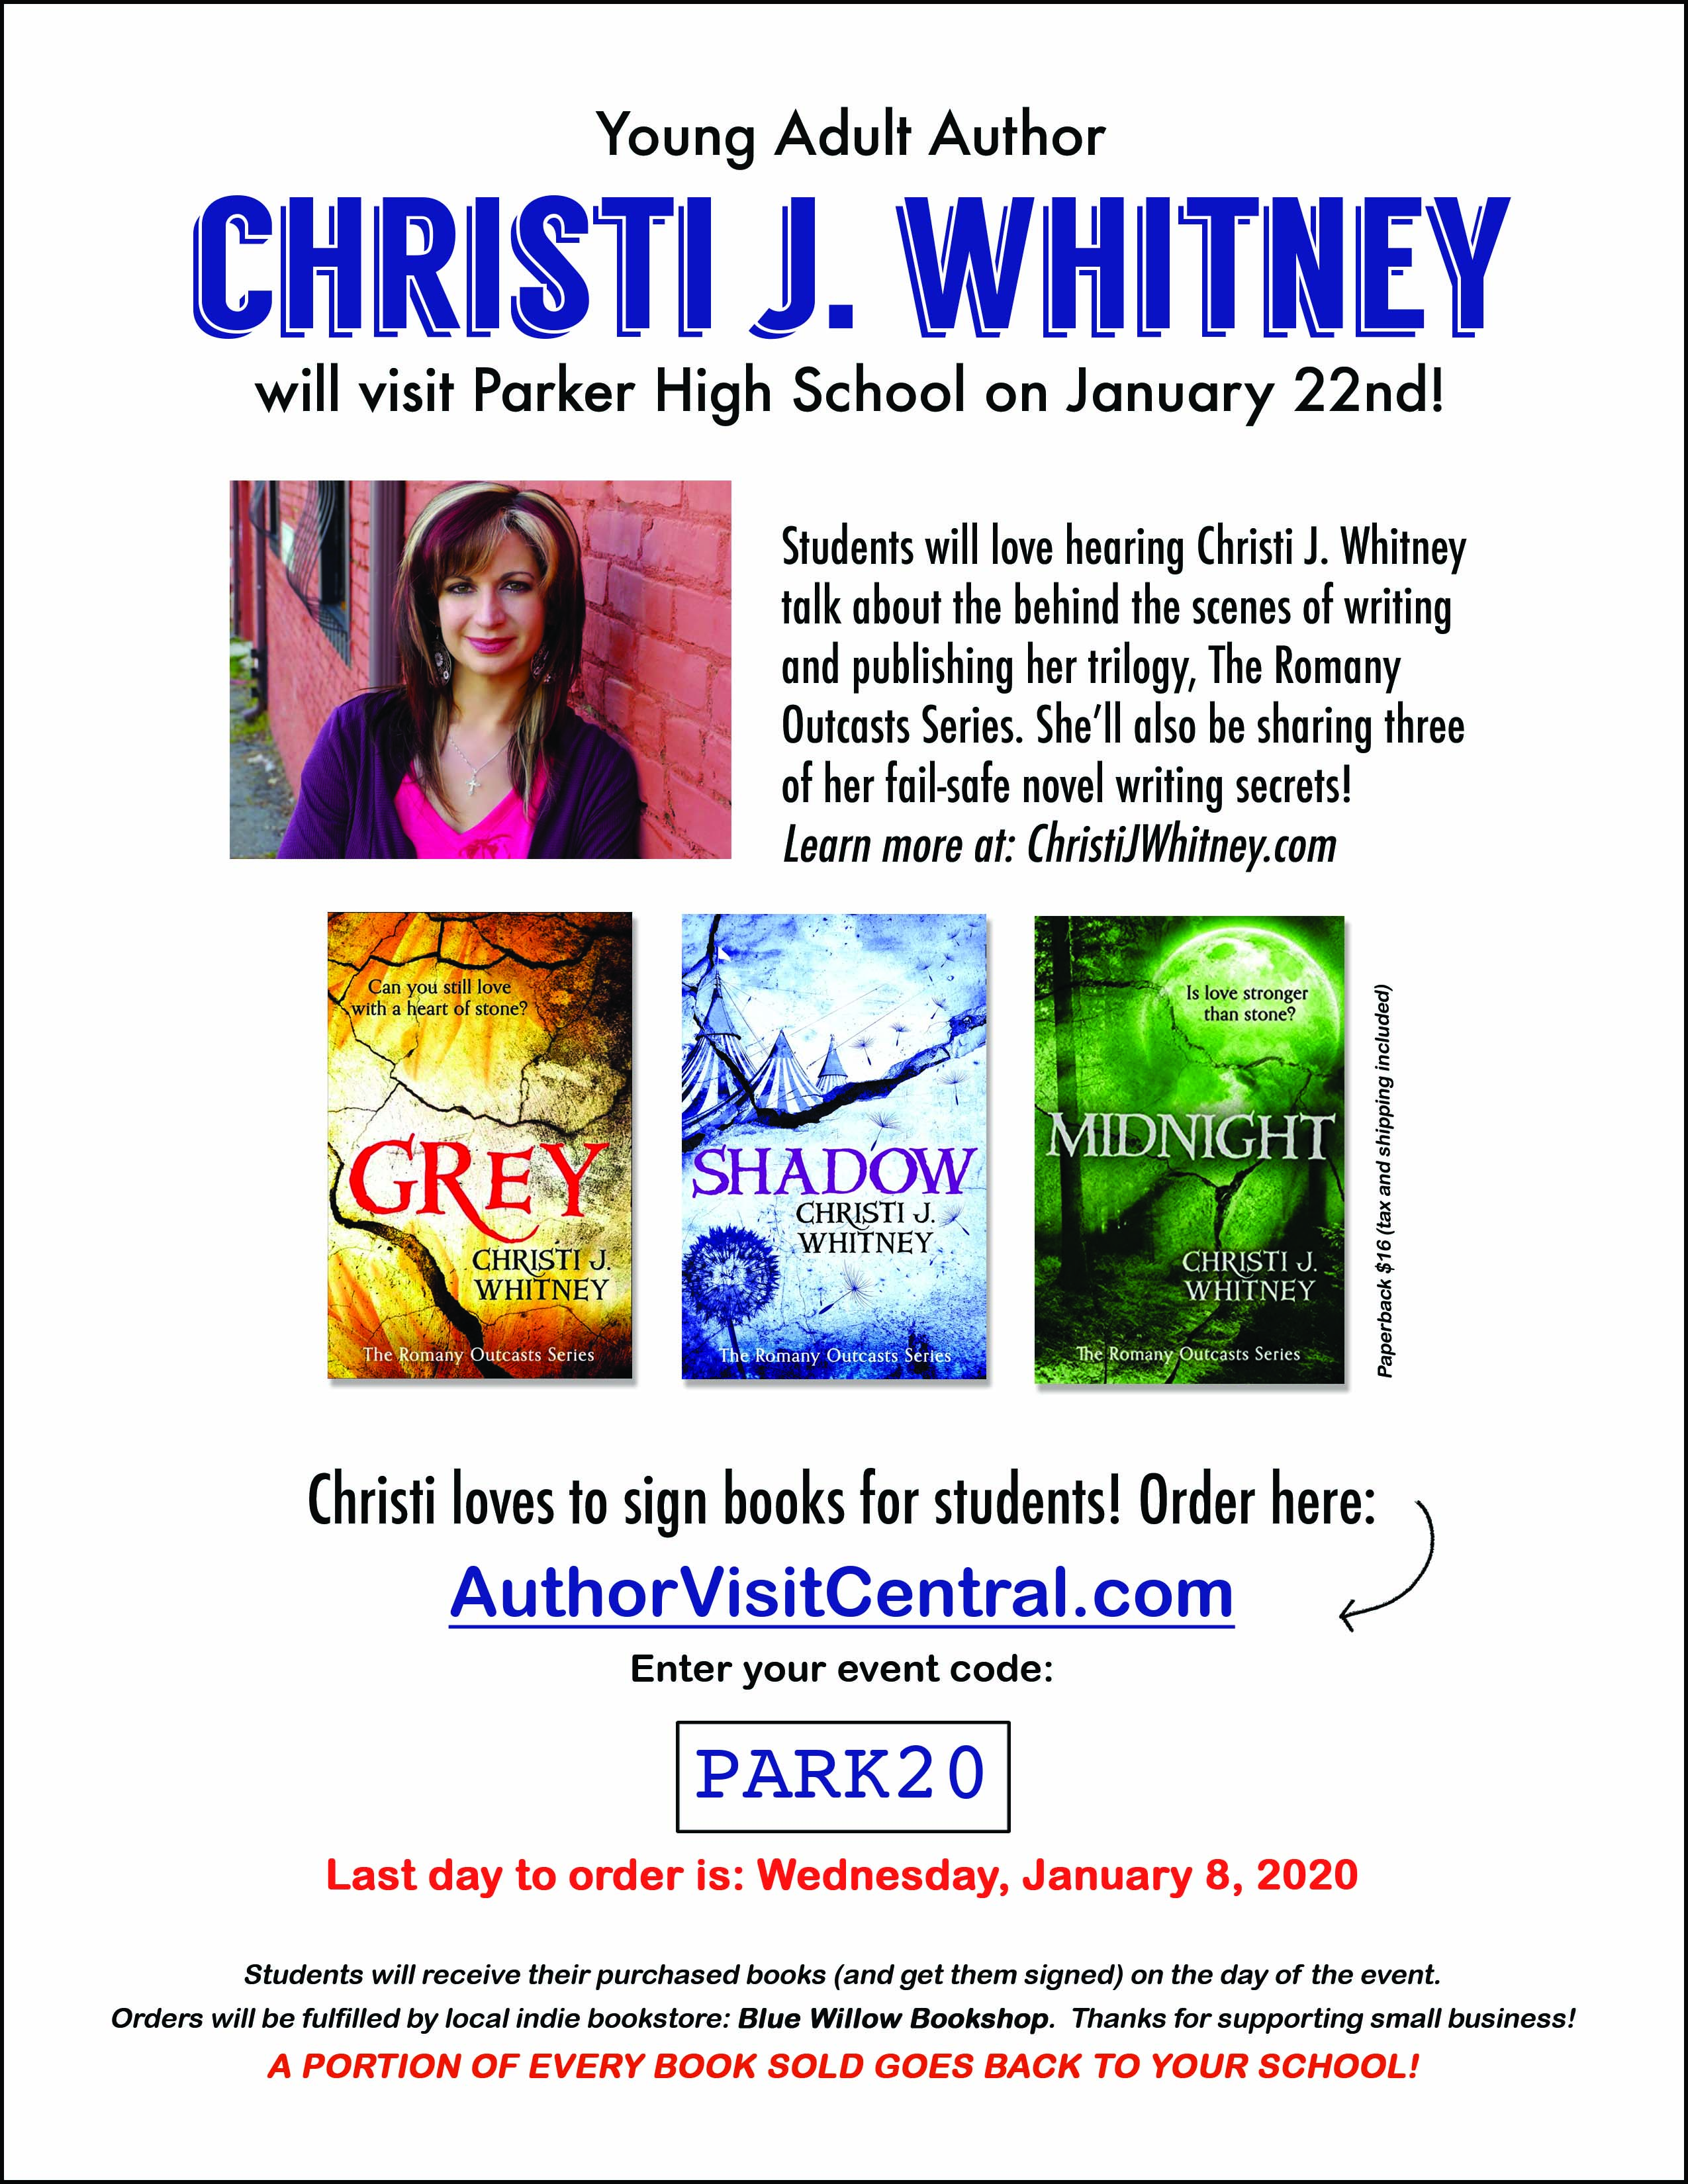 Christi J. Whitney Author Visit Flier